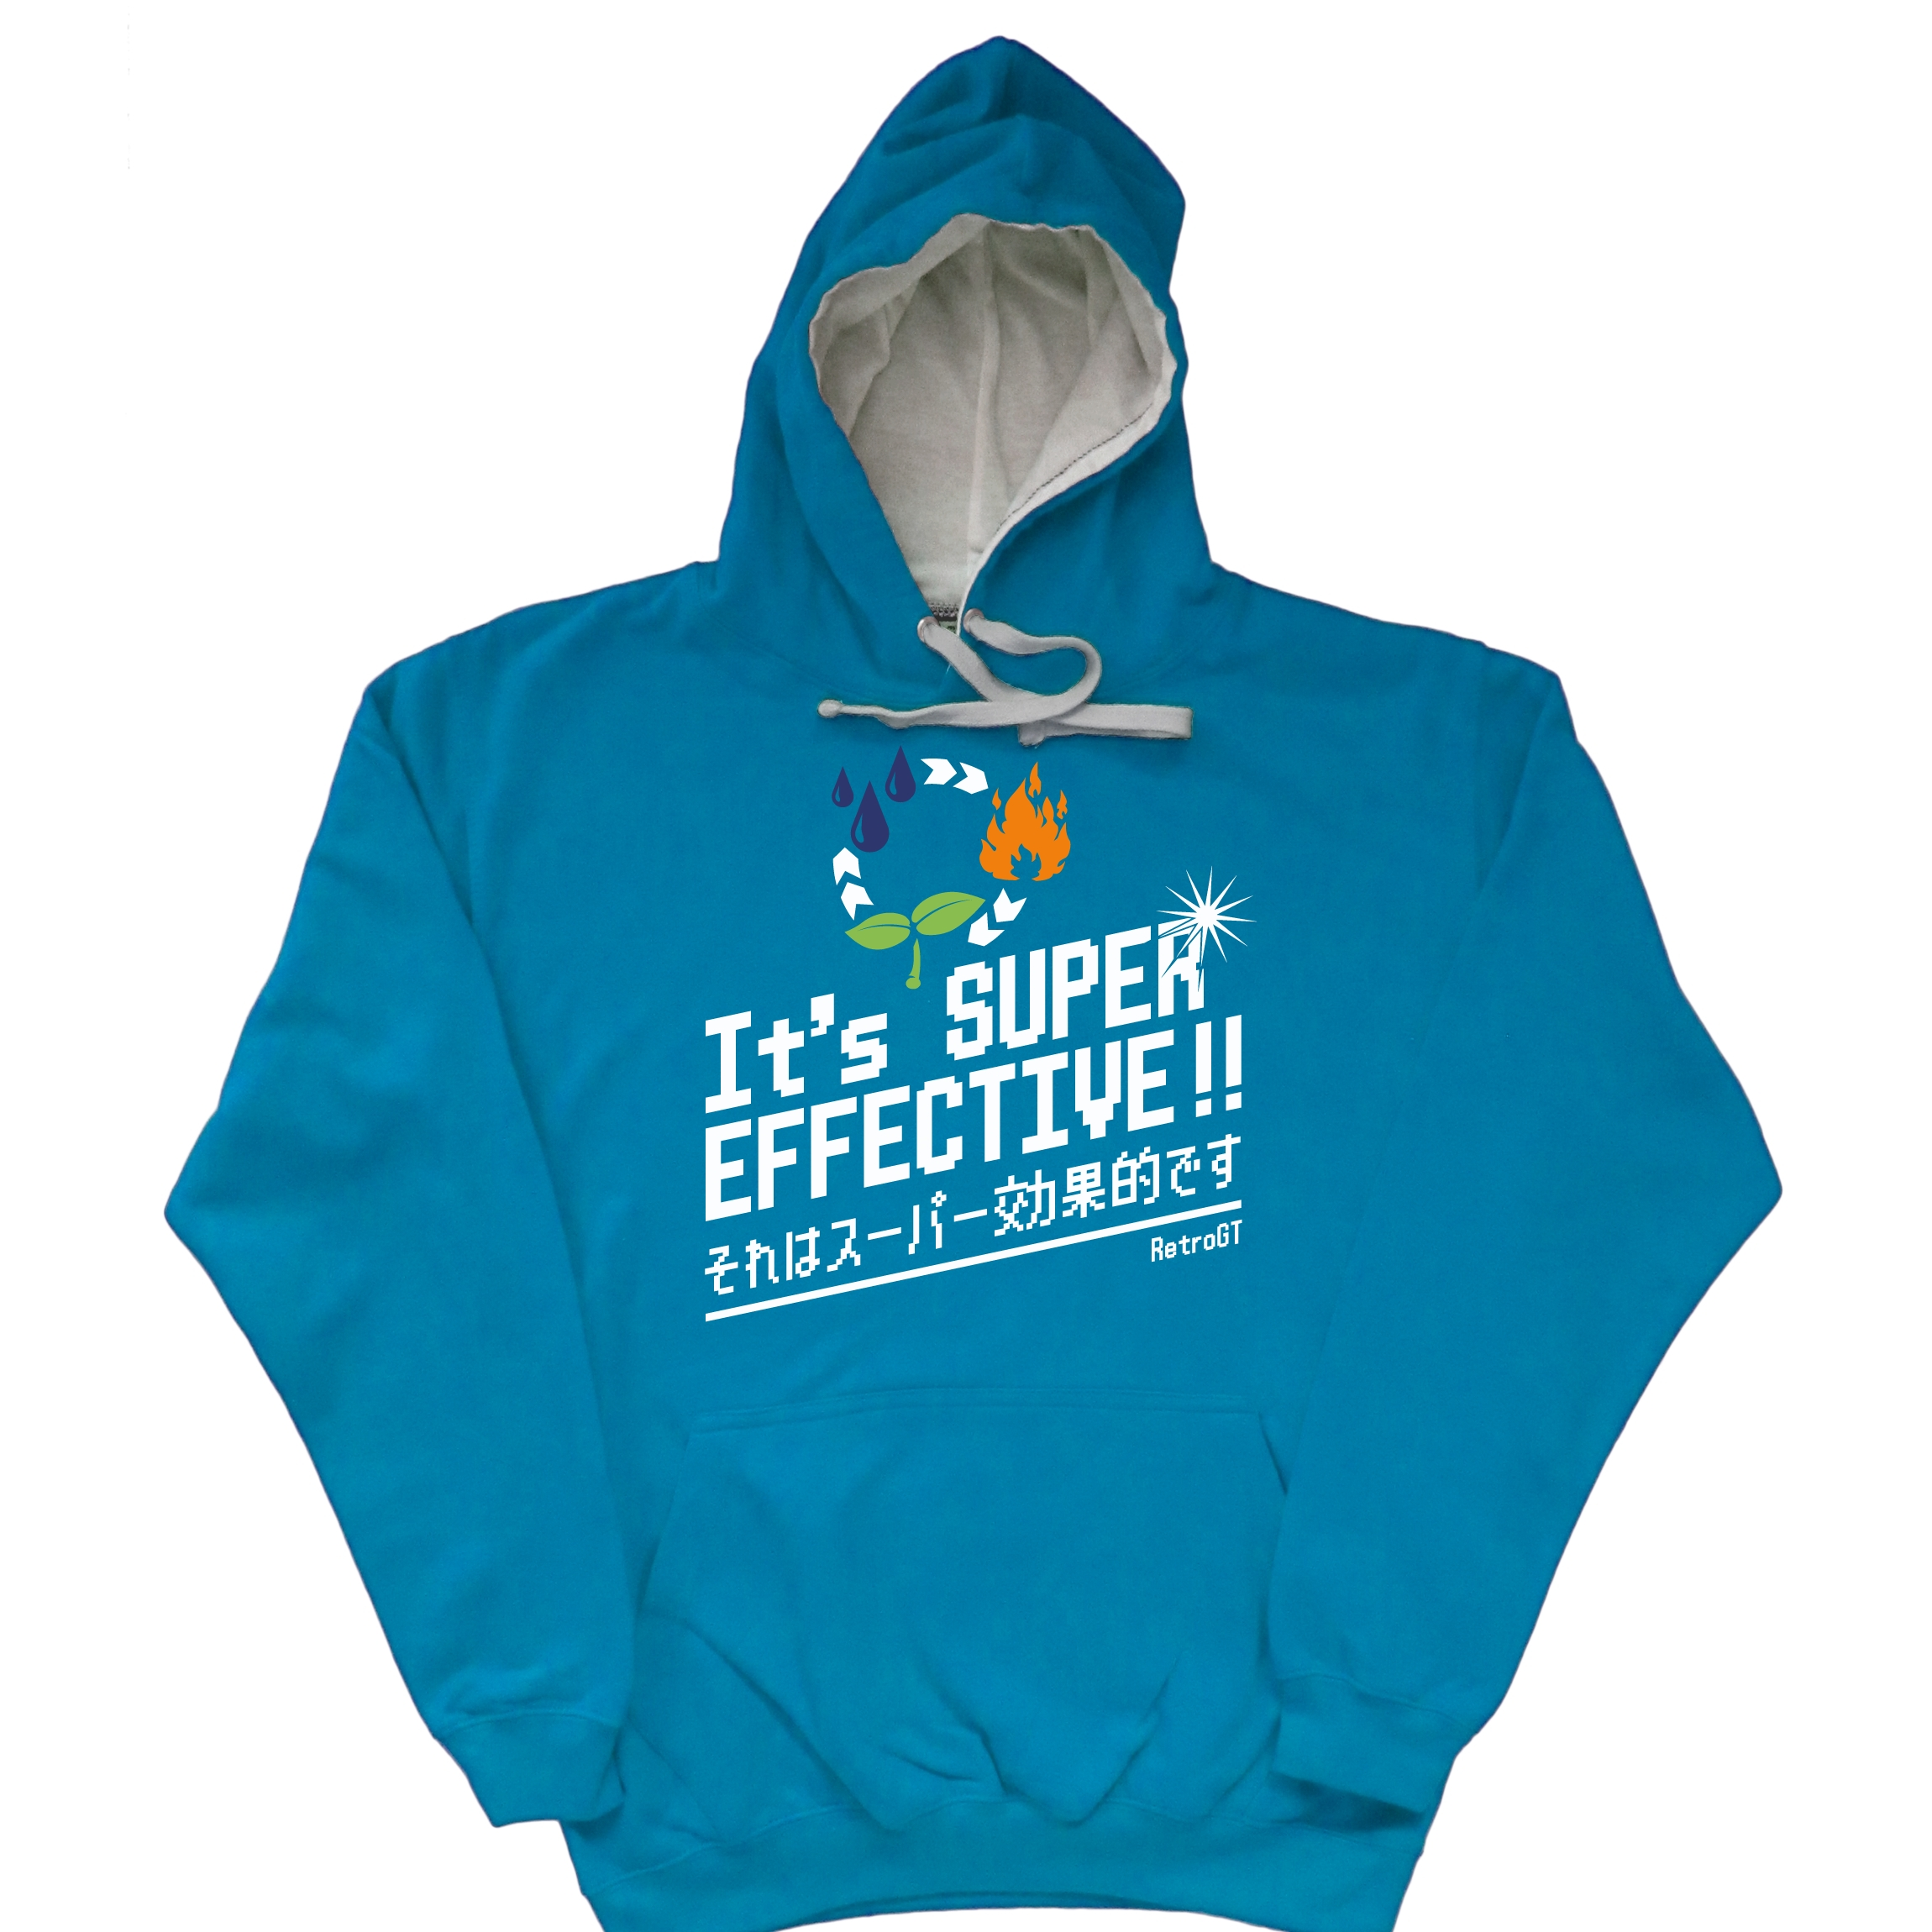 Alternative photo: It's Super Effective! Hoodie